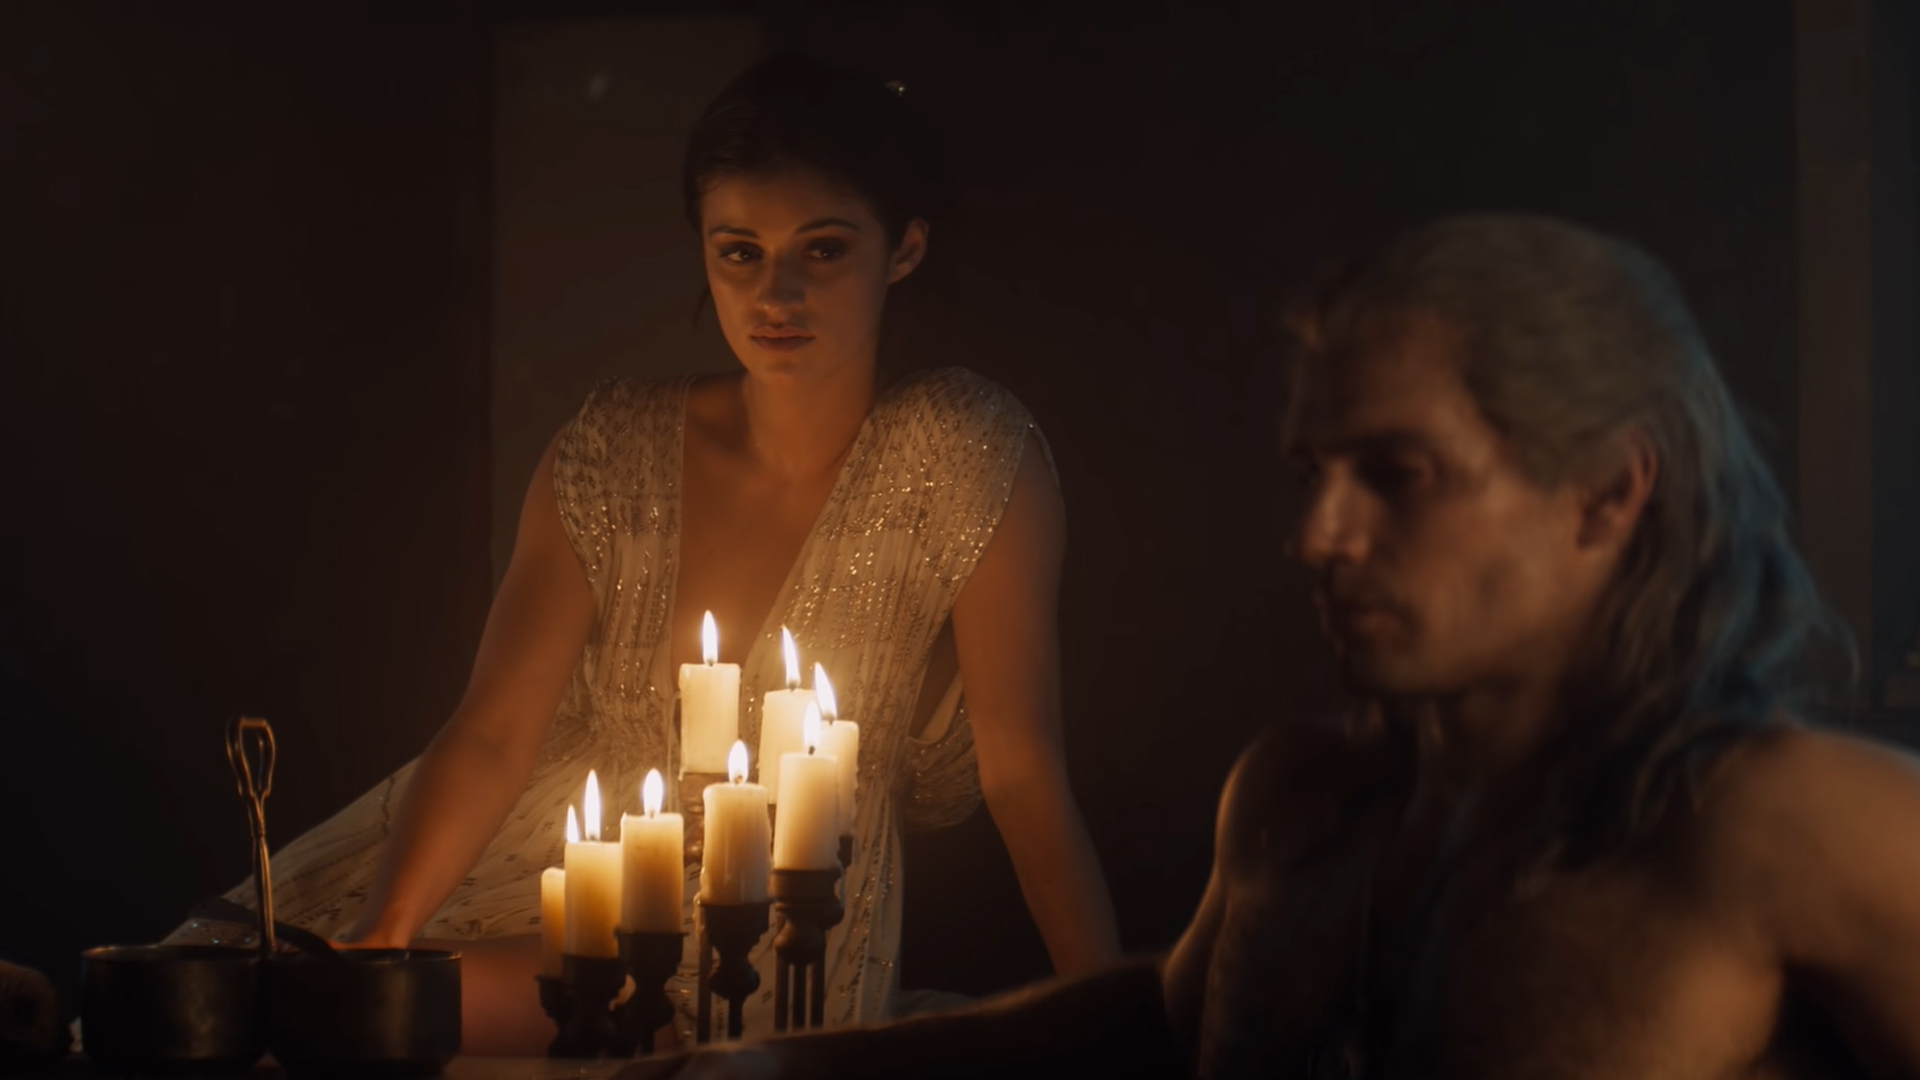 The Witcher season 2 gets an 'intimacy coordinator' – so there's probably going to be more sex